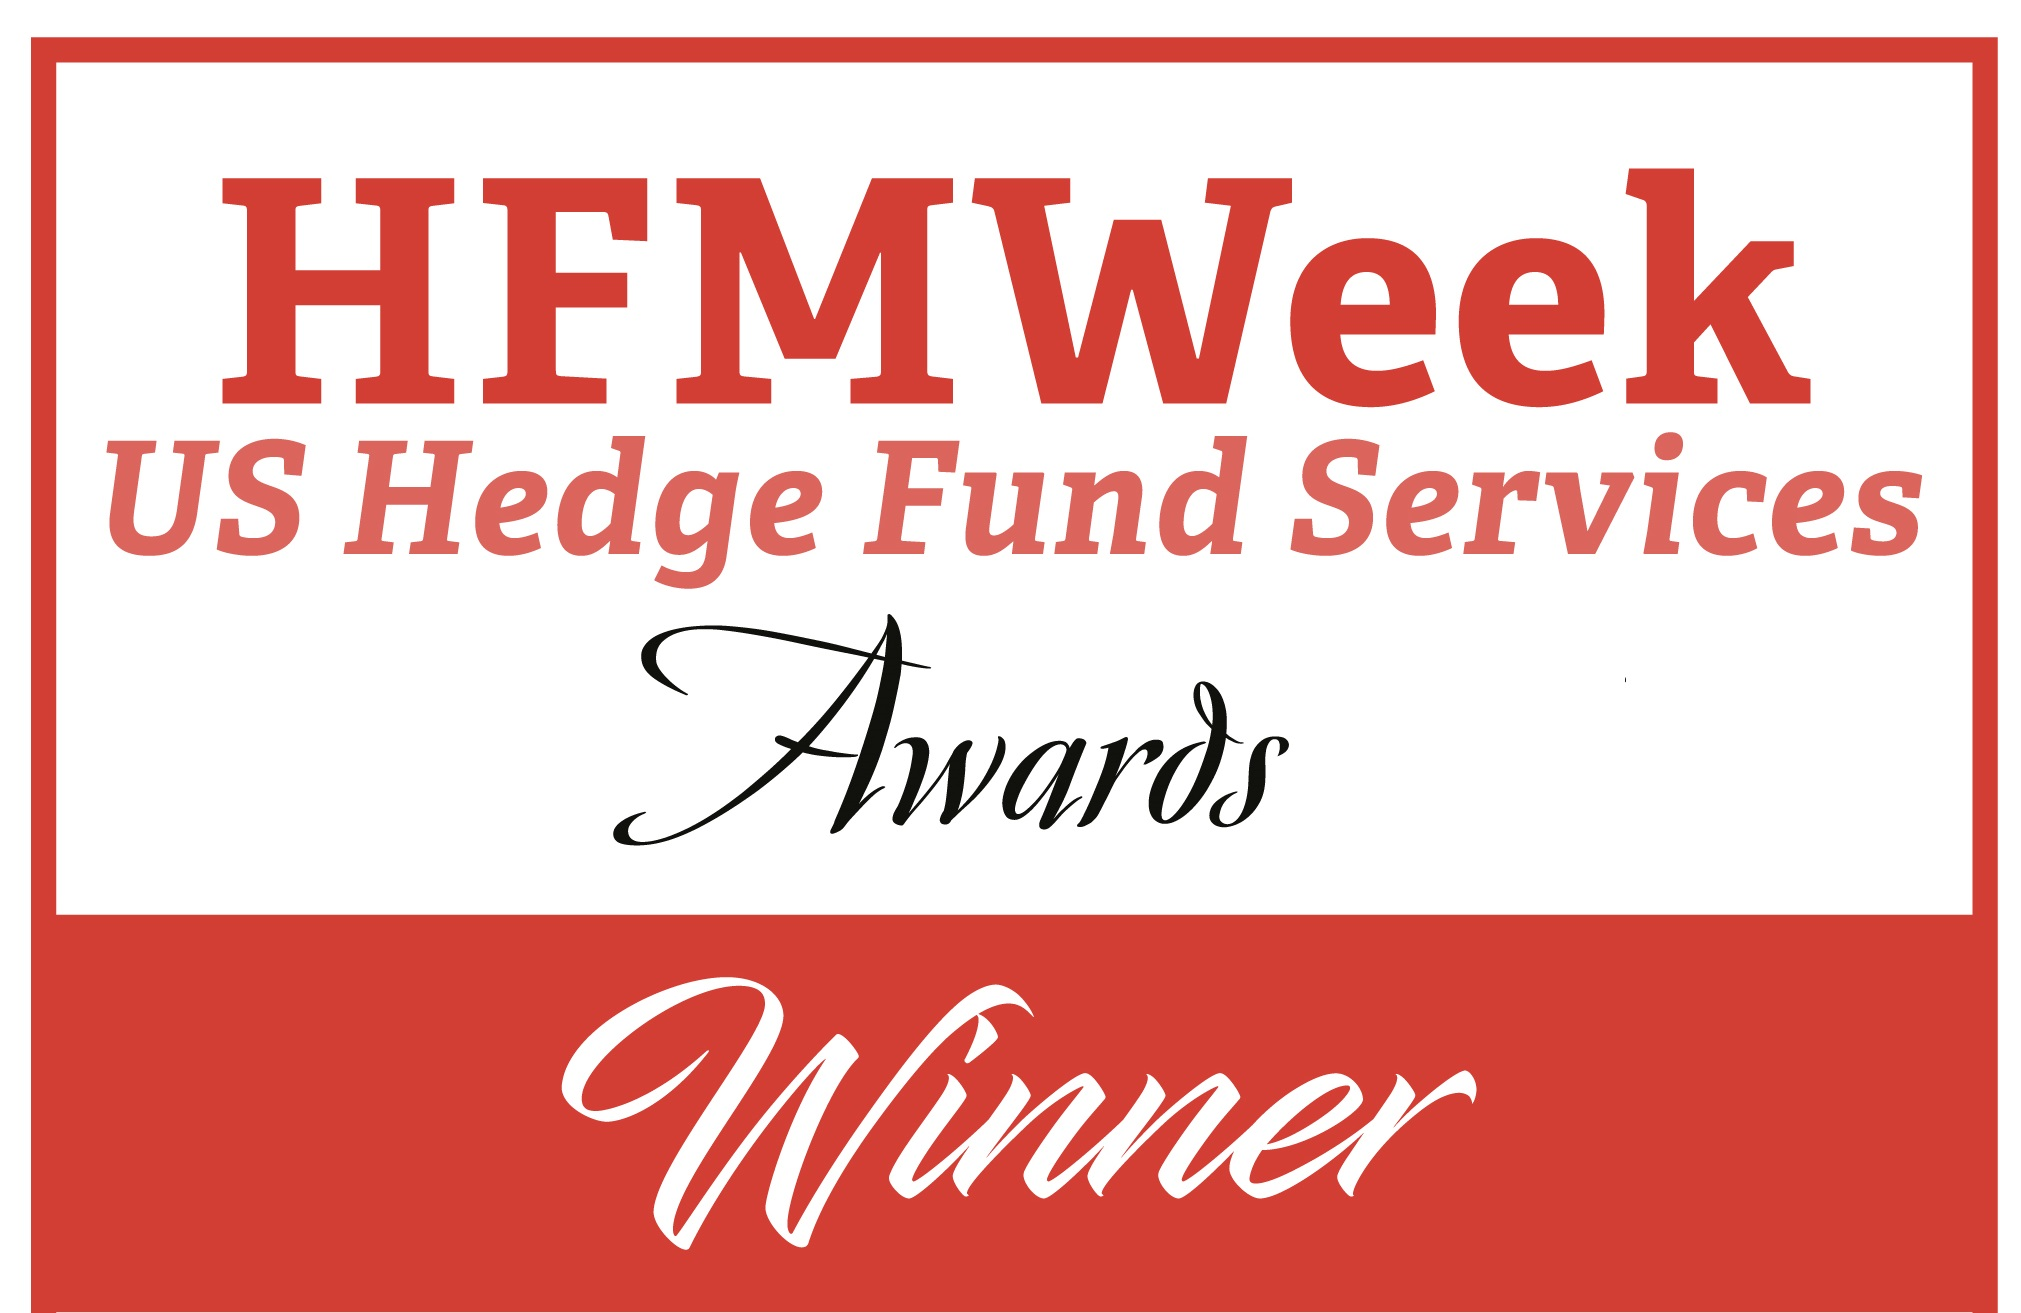 HFMWeek U.S. Hedge Fund Services Awards